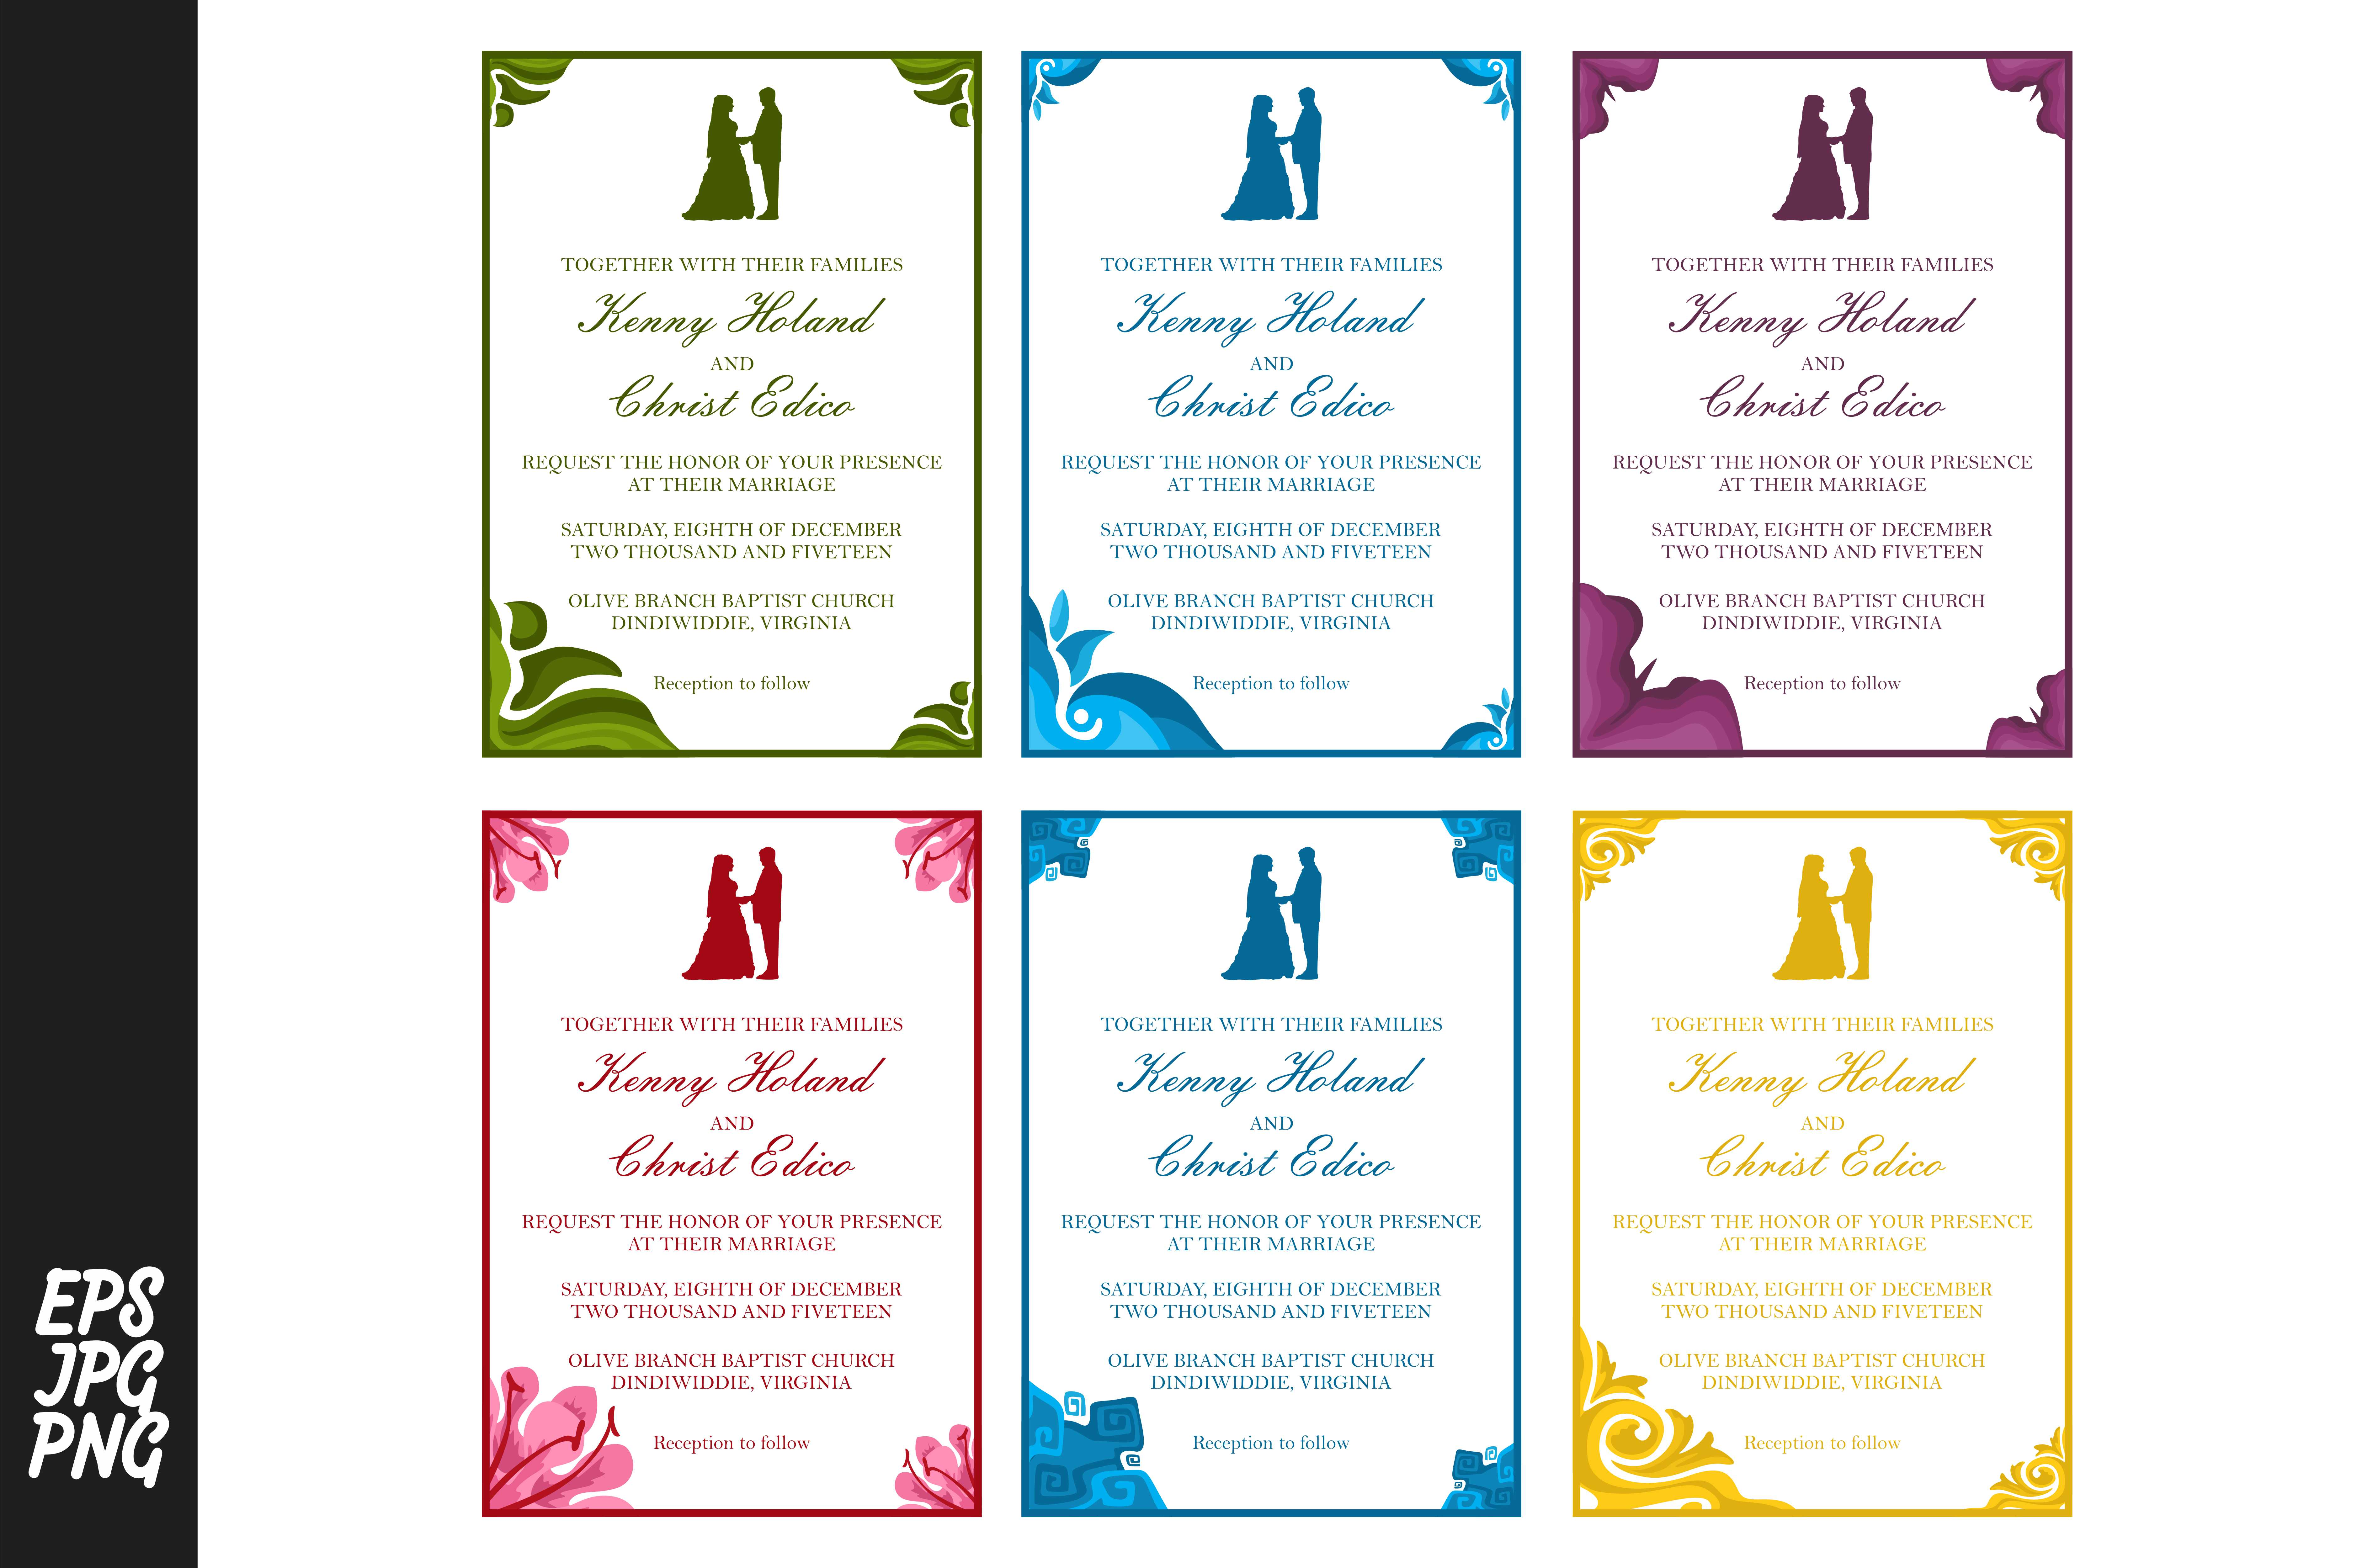 Download Free Wedding Invitation Template Bundle Graphic By Arief Sapta Adjie for Cricut Explore, Silhouette and other cutting machines.